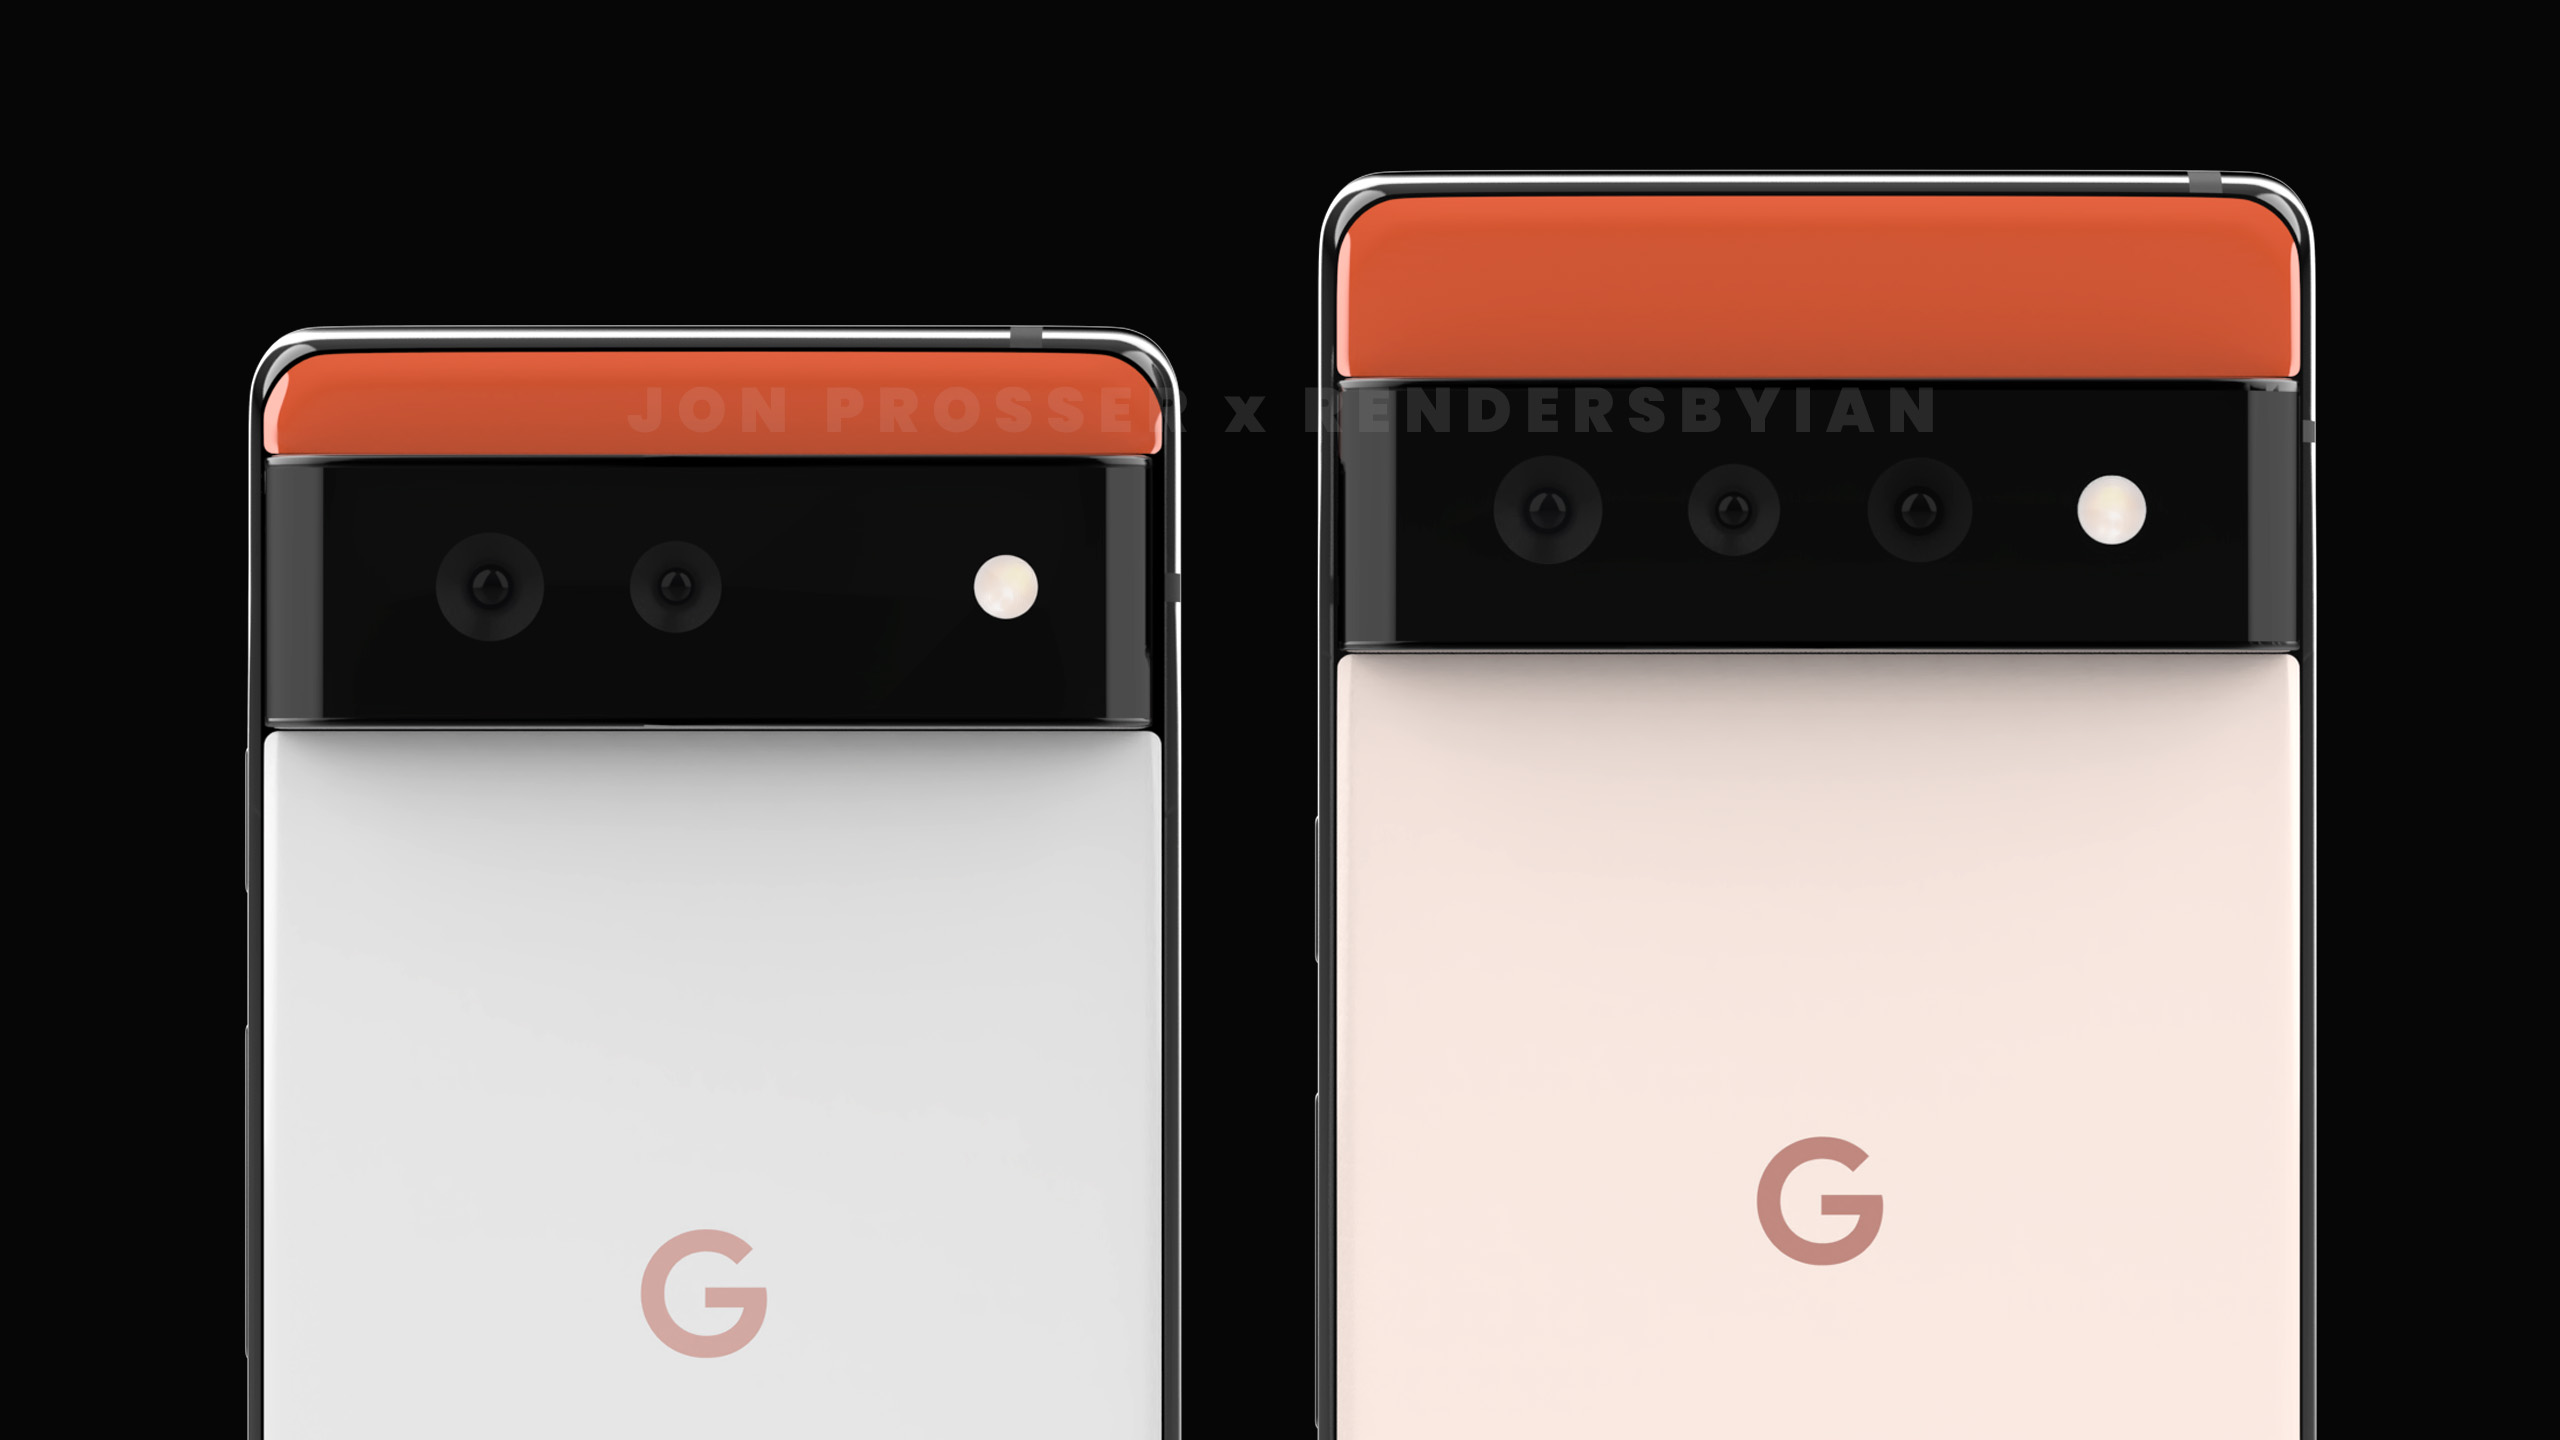 Pixel 6 series specifications leaked, Whitechapel chip details revealed